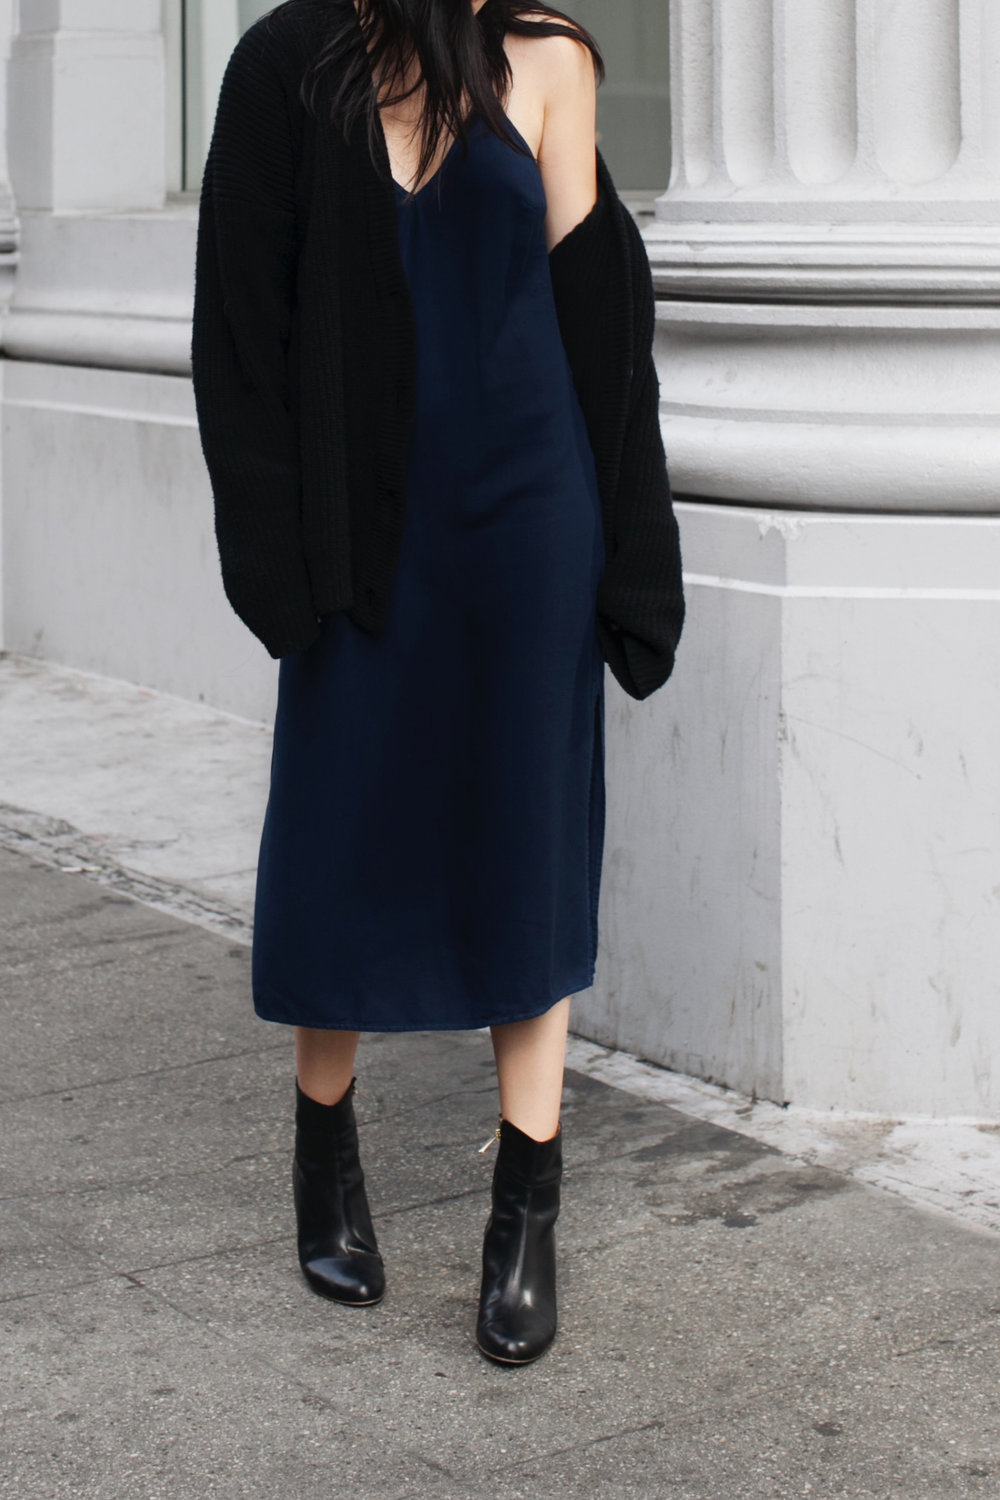 Semi polished look wearing the slip with an oversized cardigan and boots.